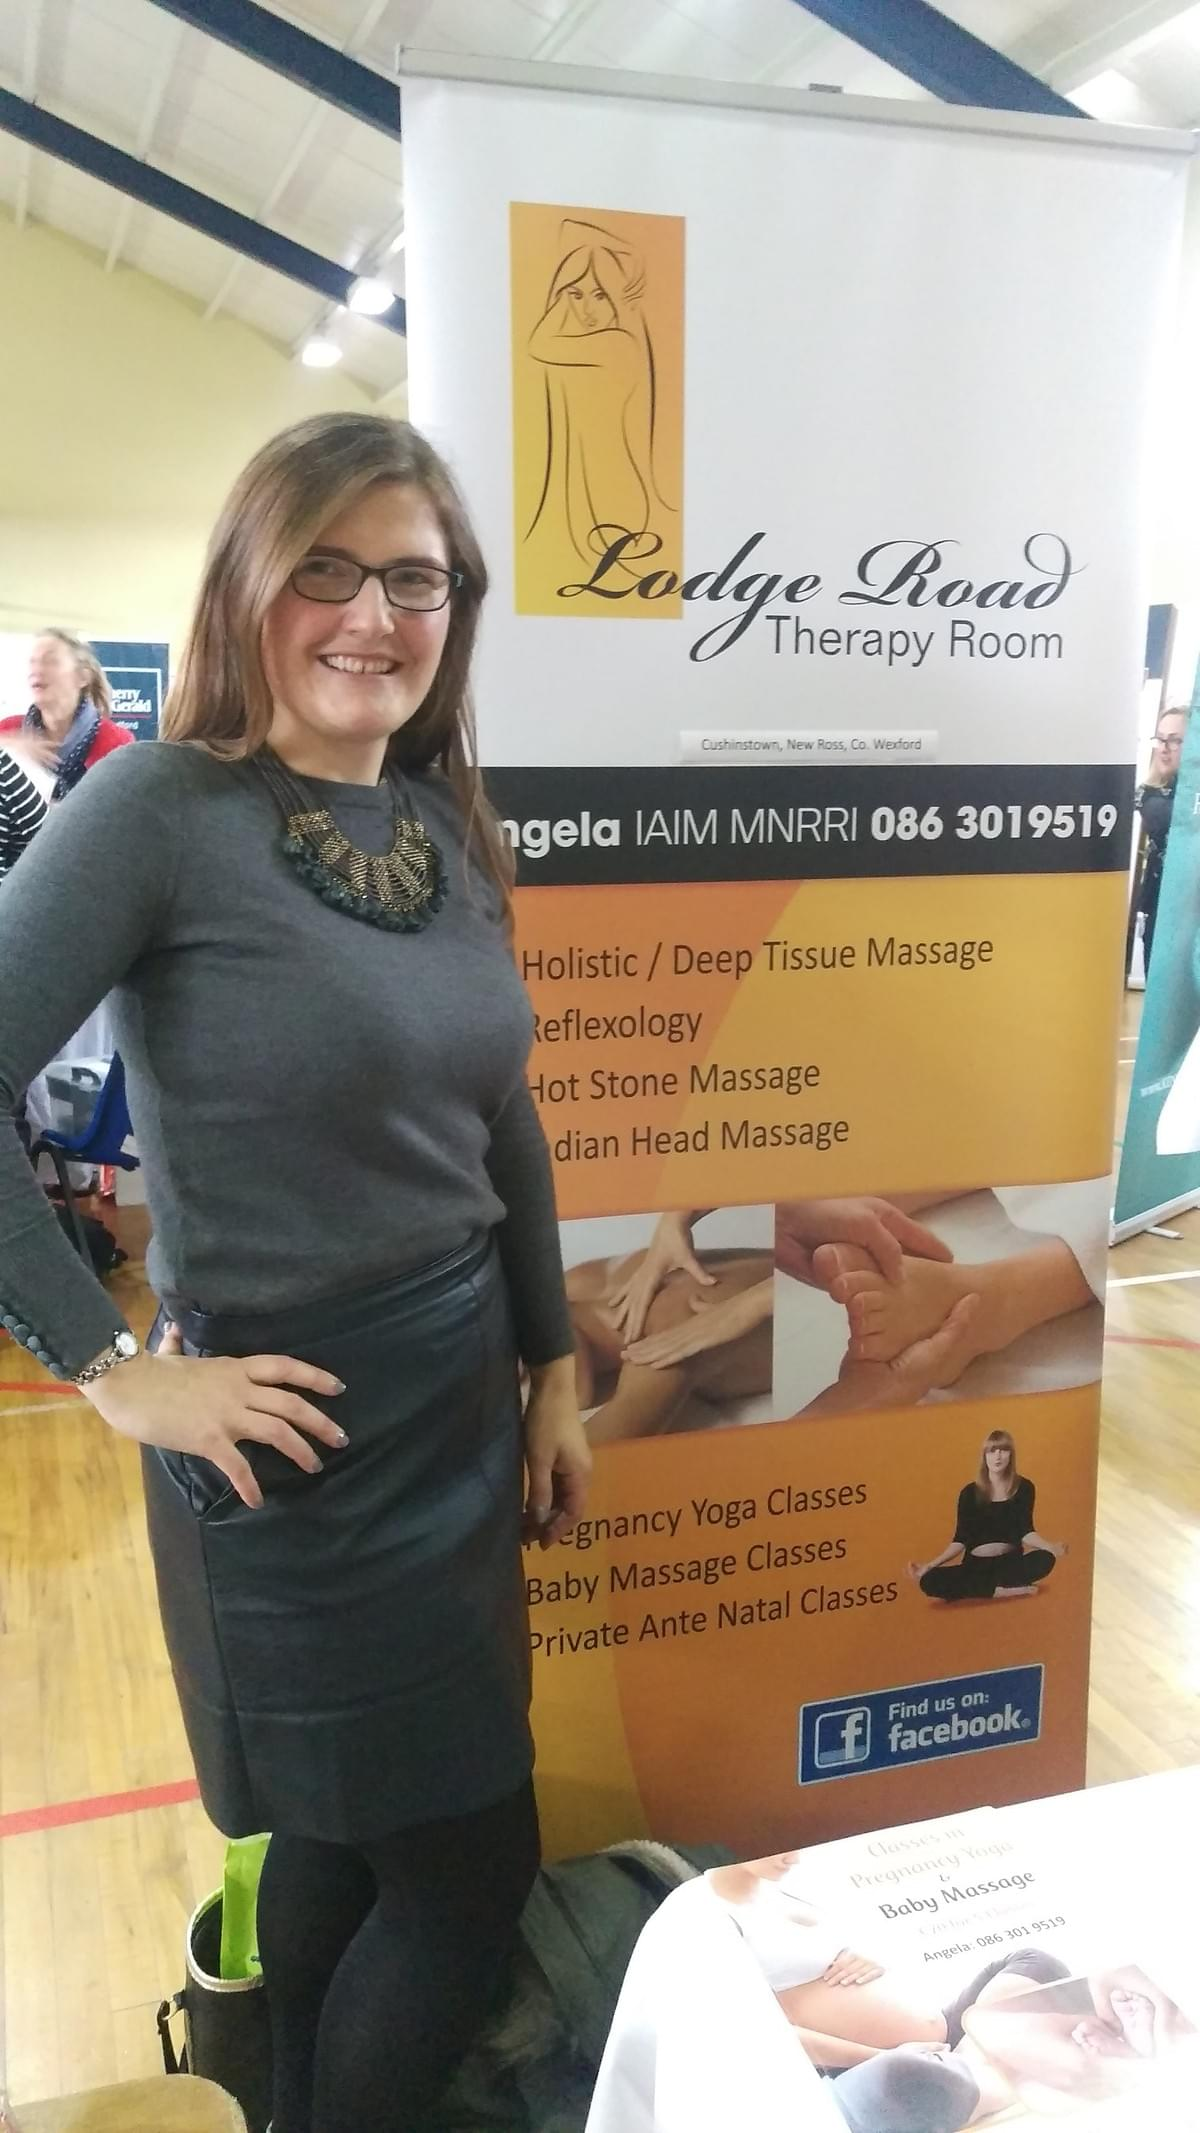 Why not treat yourself to a treatment at Lodge Road Therapy Room